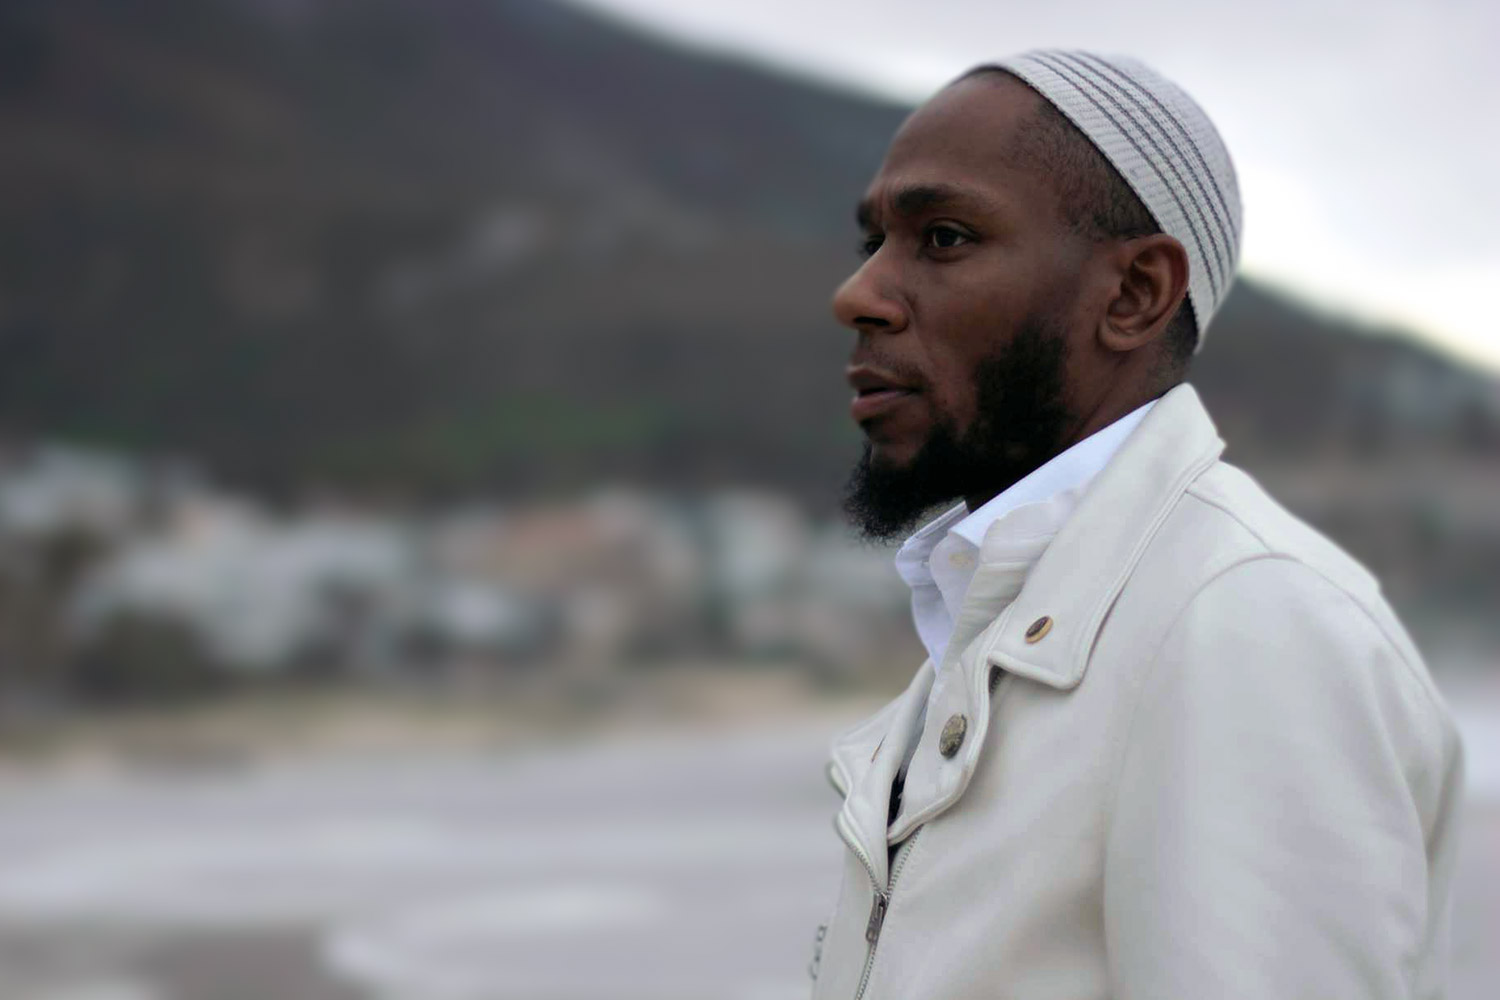 Yasiin Bey (aka Mos Def) Has Left South Africa & Will Not Be Able To Come Back Mos Def